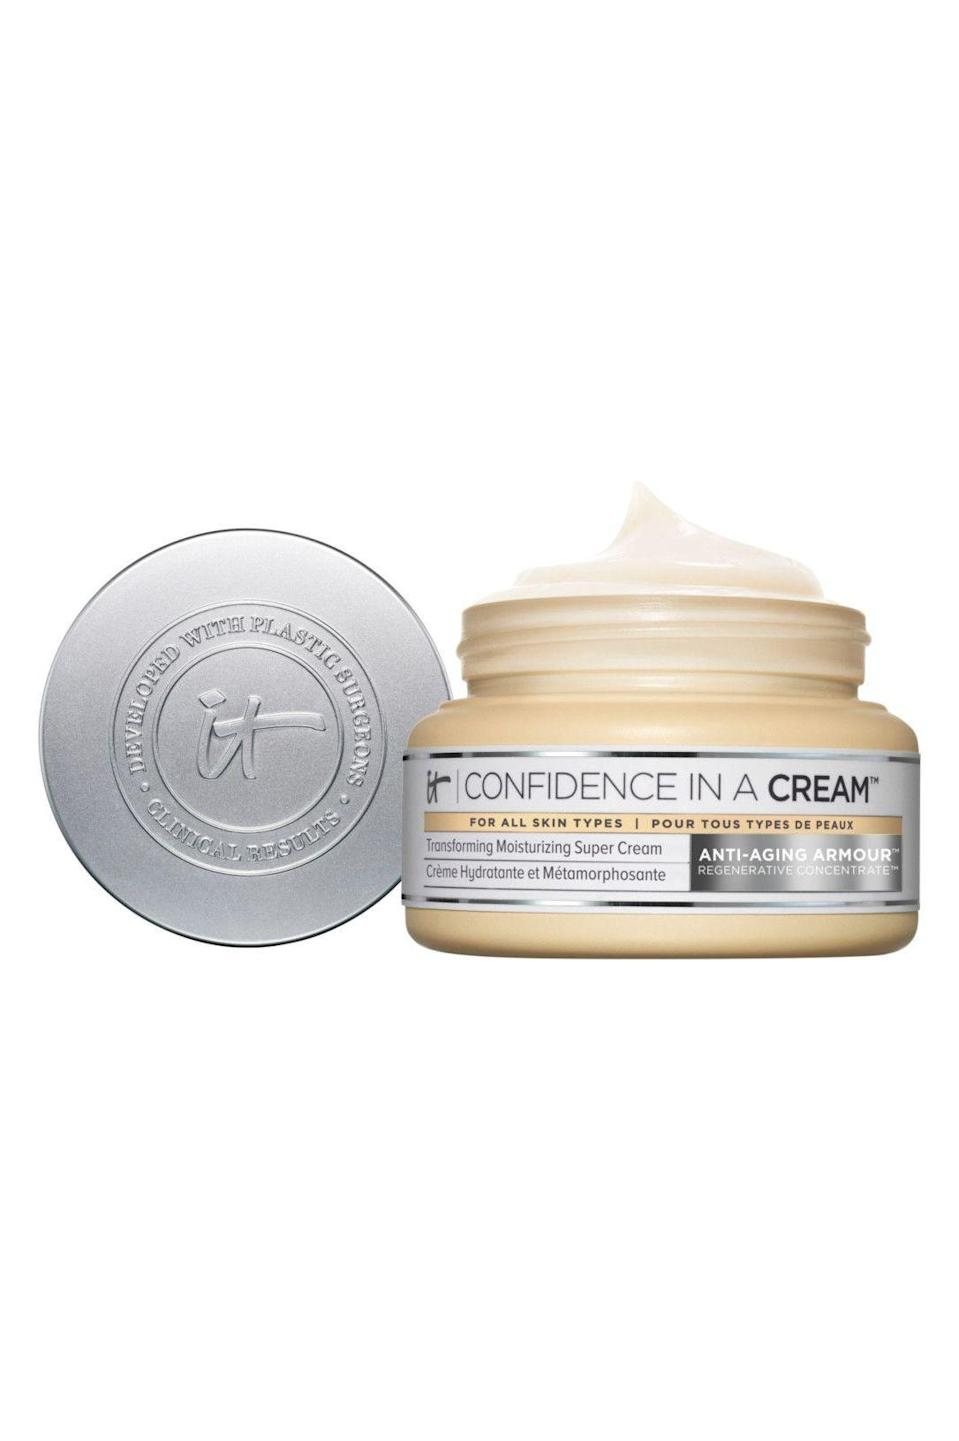 """<p><strong>It Cosmetics</strong></p><p>ulta.com</p><p><strong>$49.00</strong></p><p><a href=""""https://go.redirectingat.com?id=74968X1596630&url=https%3A%2F%2Fwww.ulta.com%2Fconfidence-in-a-cream-anti-aging-moisturizer%3FproductId%3DxlsImpprod13641053&sref=https%3A%2F%2Fwww.marieclaire.com%2Fbeauty%2Fg34015100%2Fanti-aging-moisturizers%2F"""" rel=""""nofollow noopener"""" target=""""_blank"""" data-ylk=""""slk:SHOP IT"""" class=""""link rapid-noclick-resp"""">SHOP IT</a></p><p>This cream has all the ingredients that your skin is craving, including squalene, peptides, hyaluronic acid, and collagen. Perfect for blurring pores and adding radiance to your skin, you'll probably get carded again when you buy wine while wearing this moisturizer. </p>"""